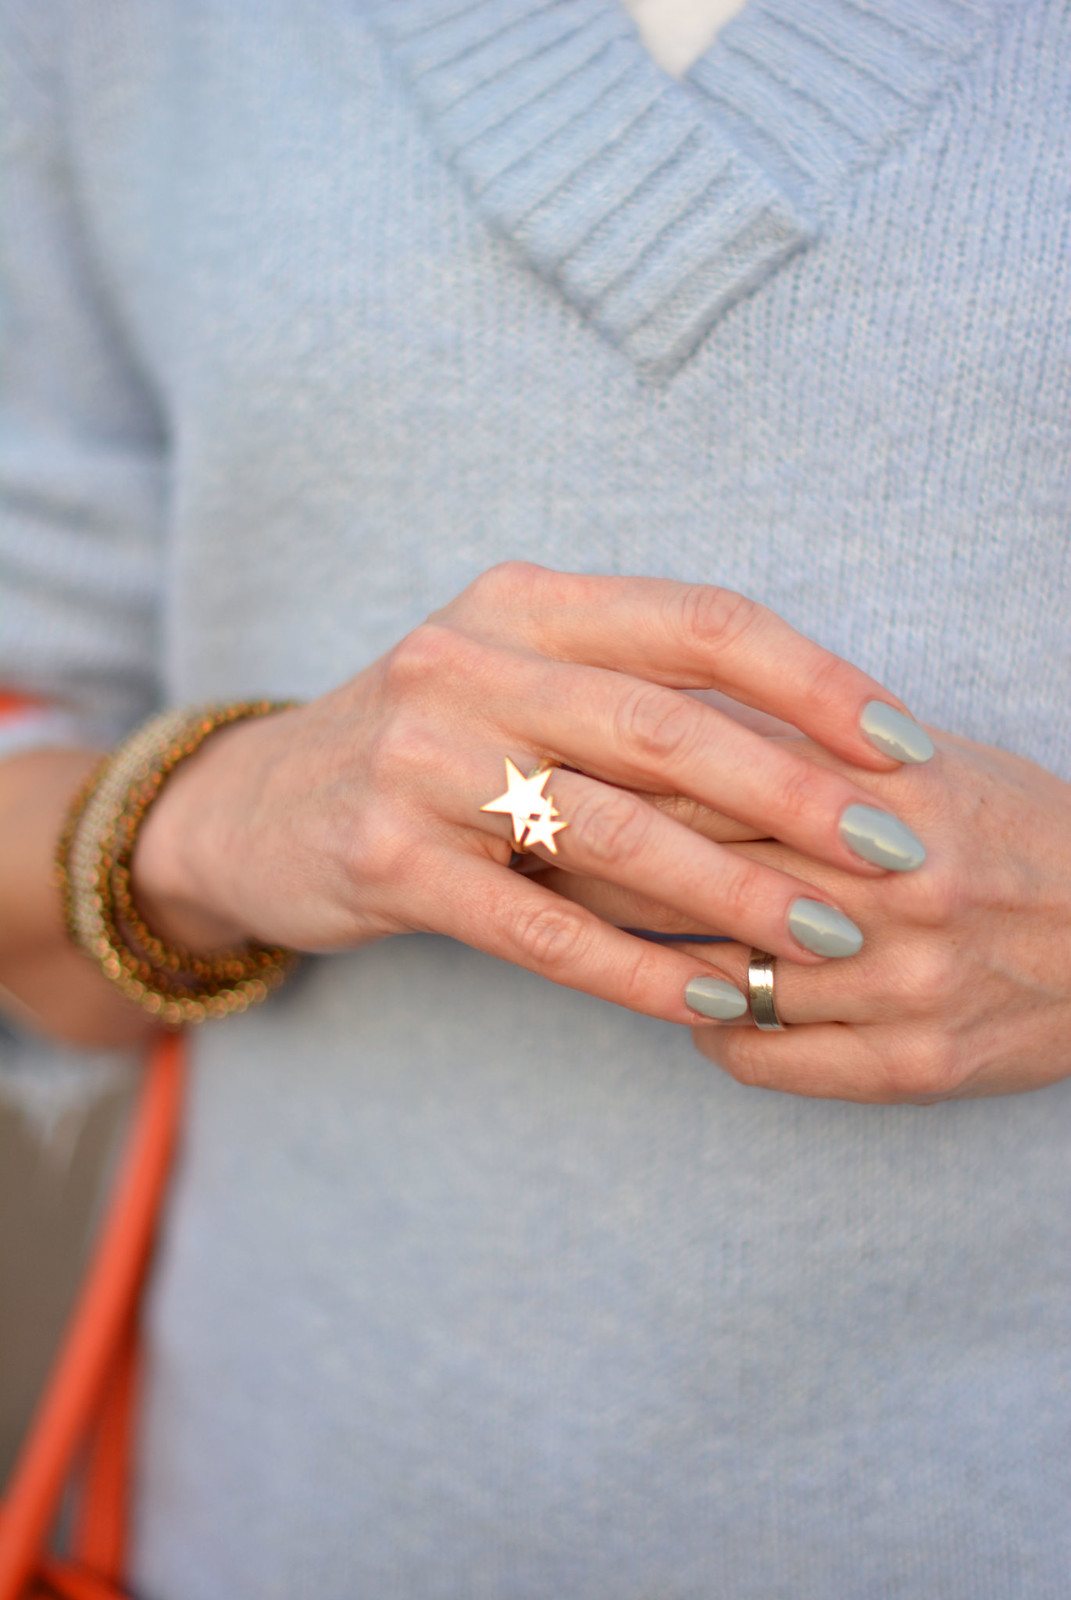 Spring style: Double gold stars ring by Lizzy O | Not Dressed As Lamb